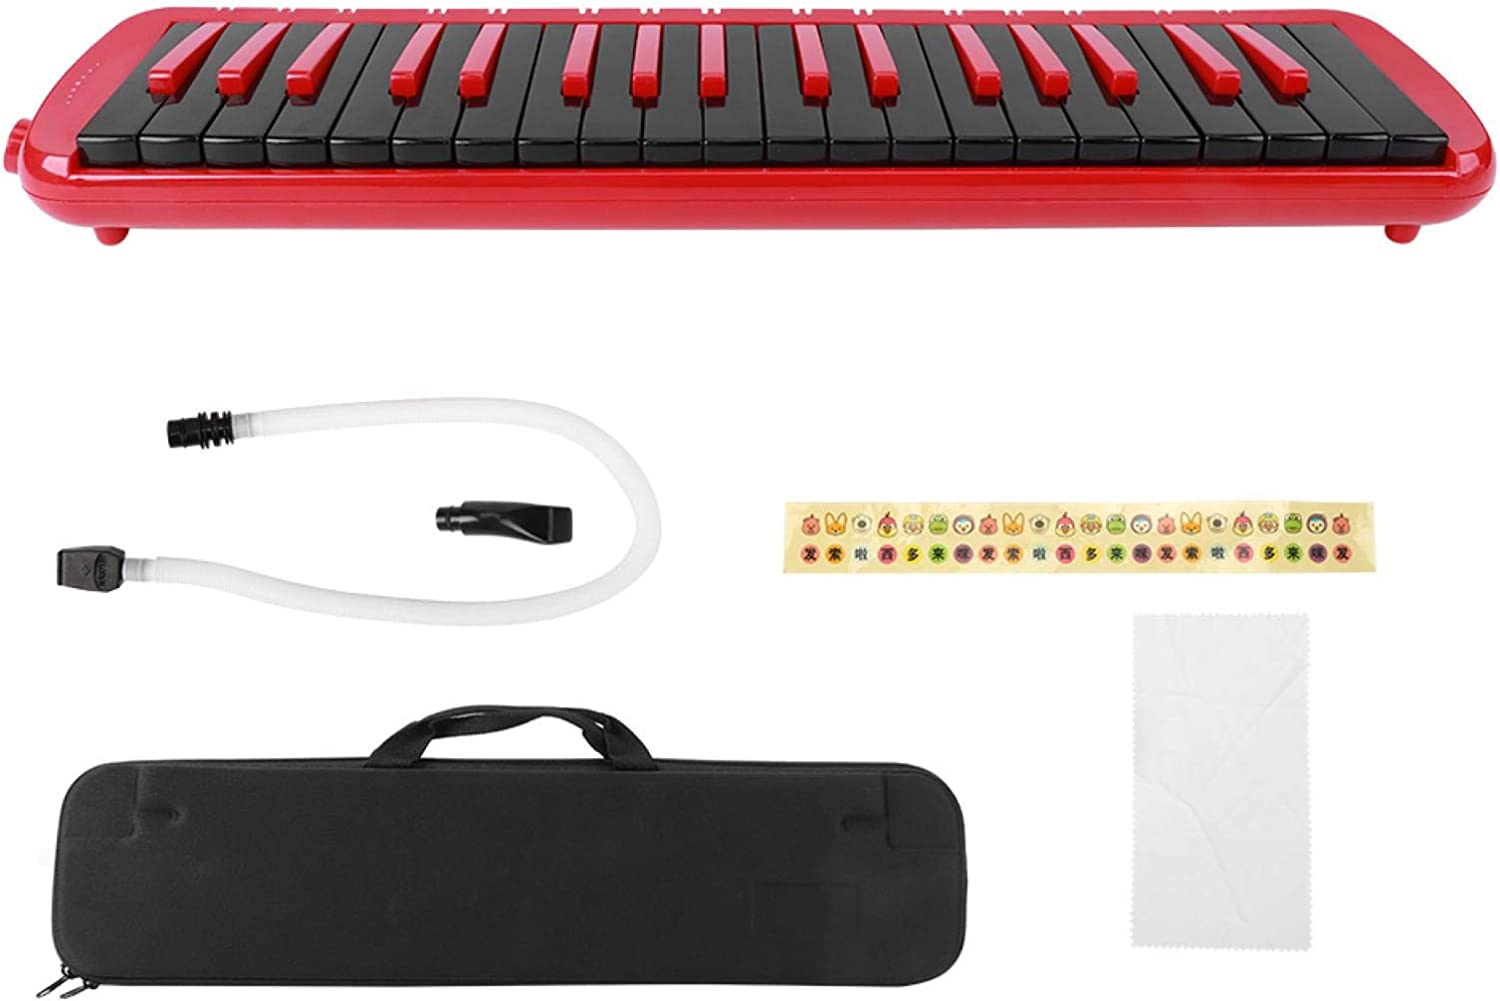 Limited price Kuuleyn Melodica Blowpipe Beginner 37 Key Chicago Mall Wi